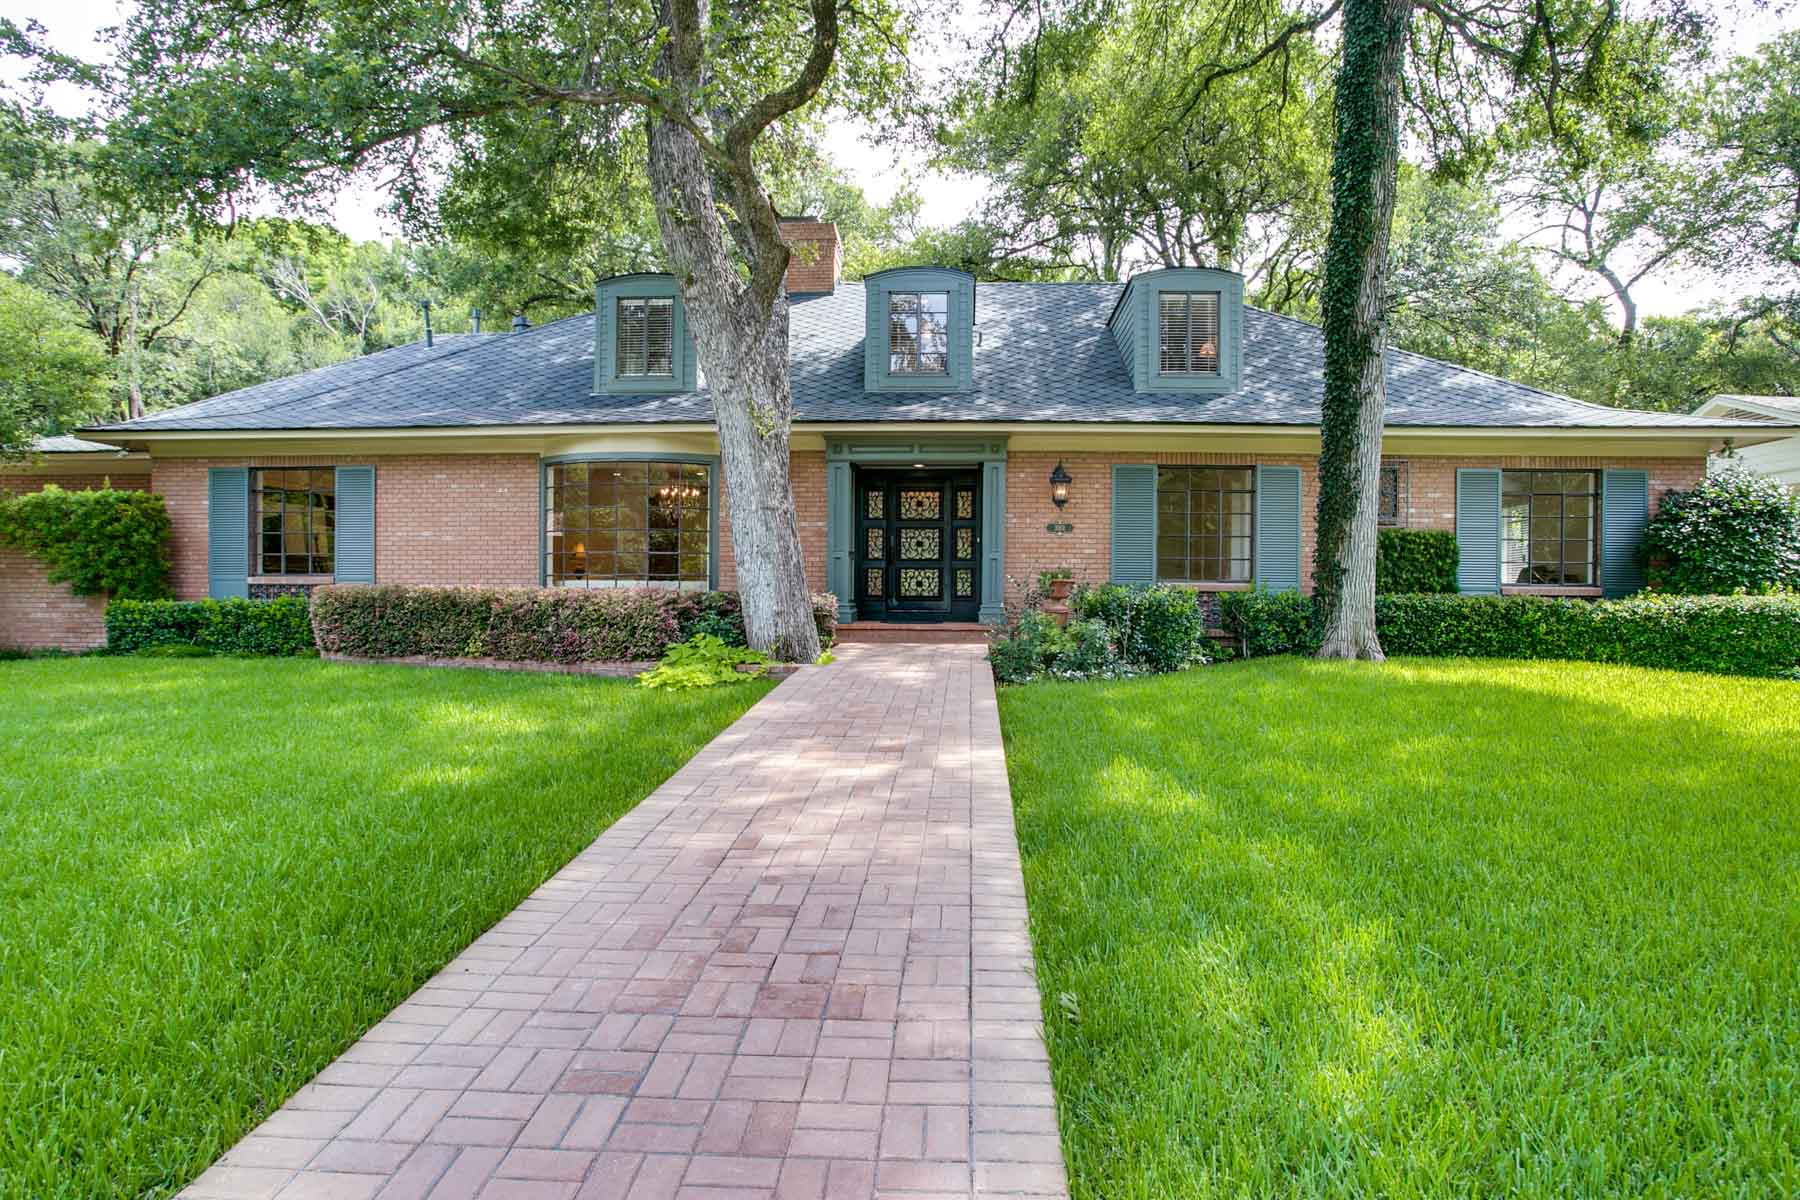 Single Family Home for Sale at Totally Renovated Home 3901 Overton Park Drive E Fort Worth, Texas, 76109 United States